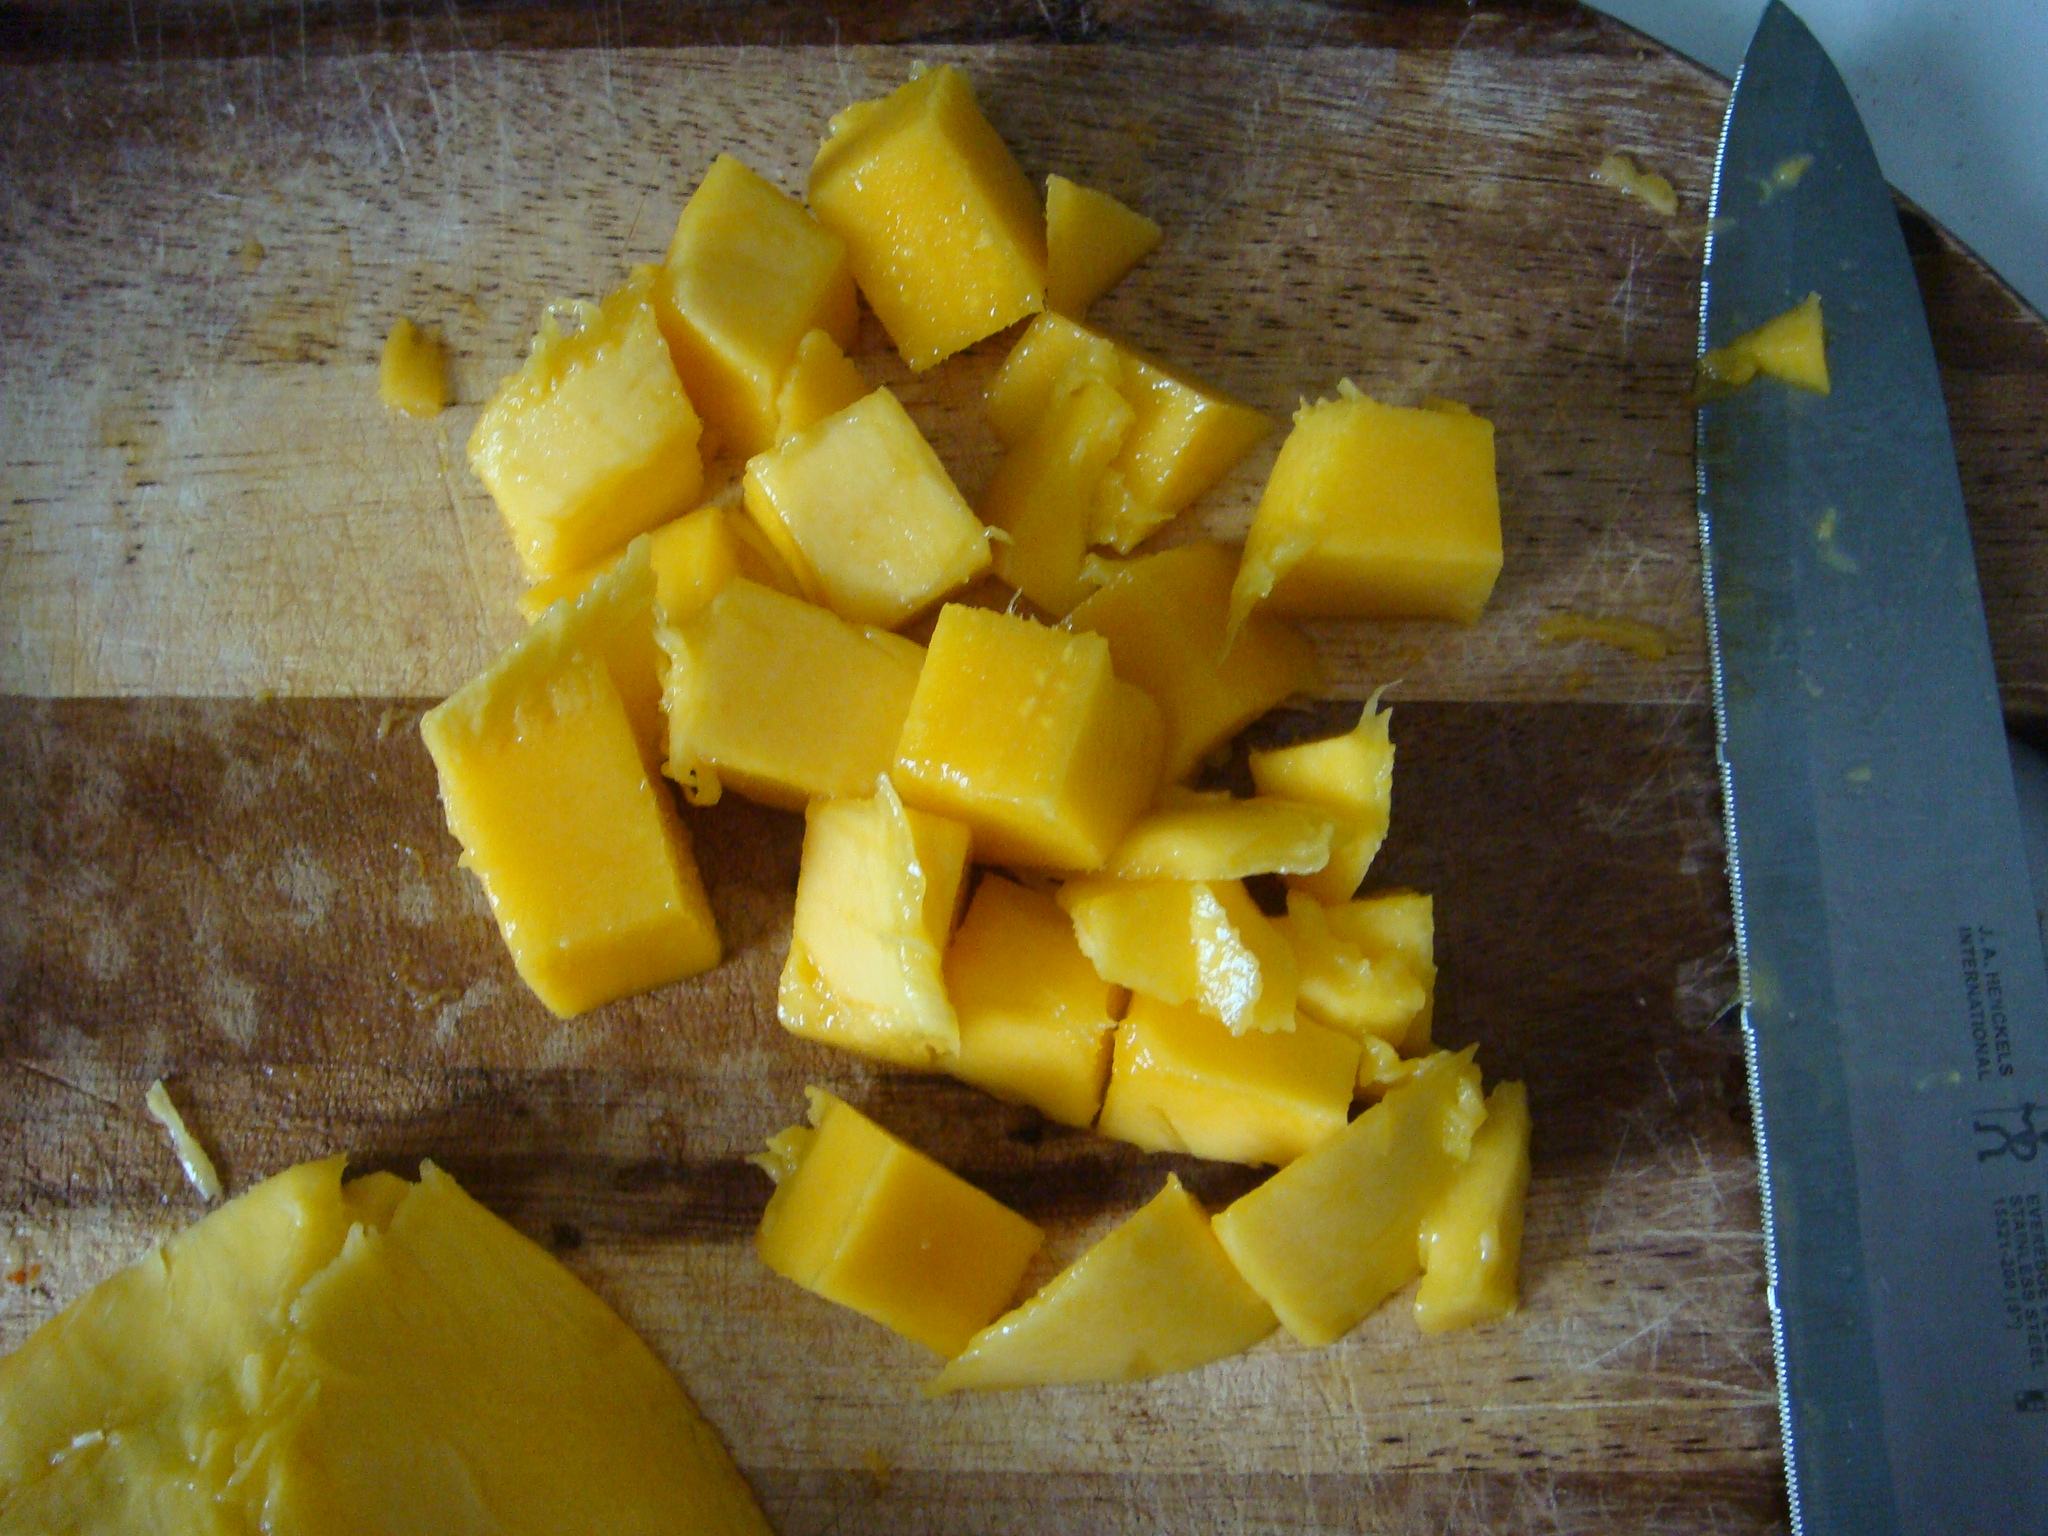 First, Cut The Mangoes Into Cubes Watch My Video To See How Don't Dump  All The Mango Chunks Into A Freezer Bag Before Storing In The Freezer,